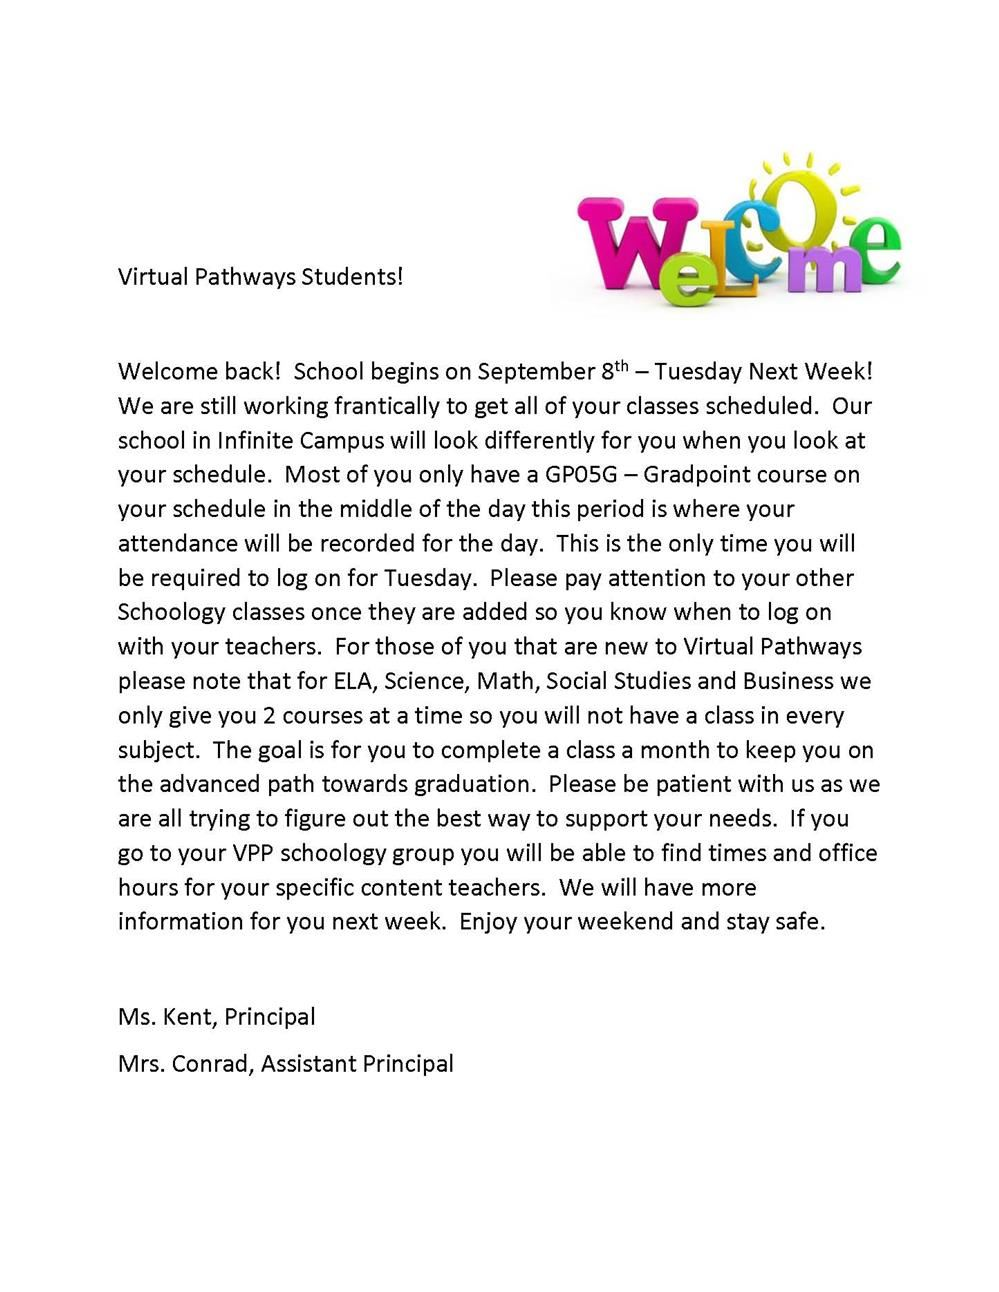 Virtual Pathways Welcome Letter